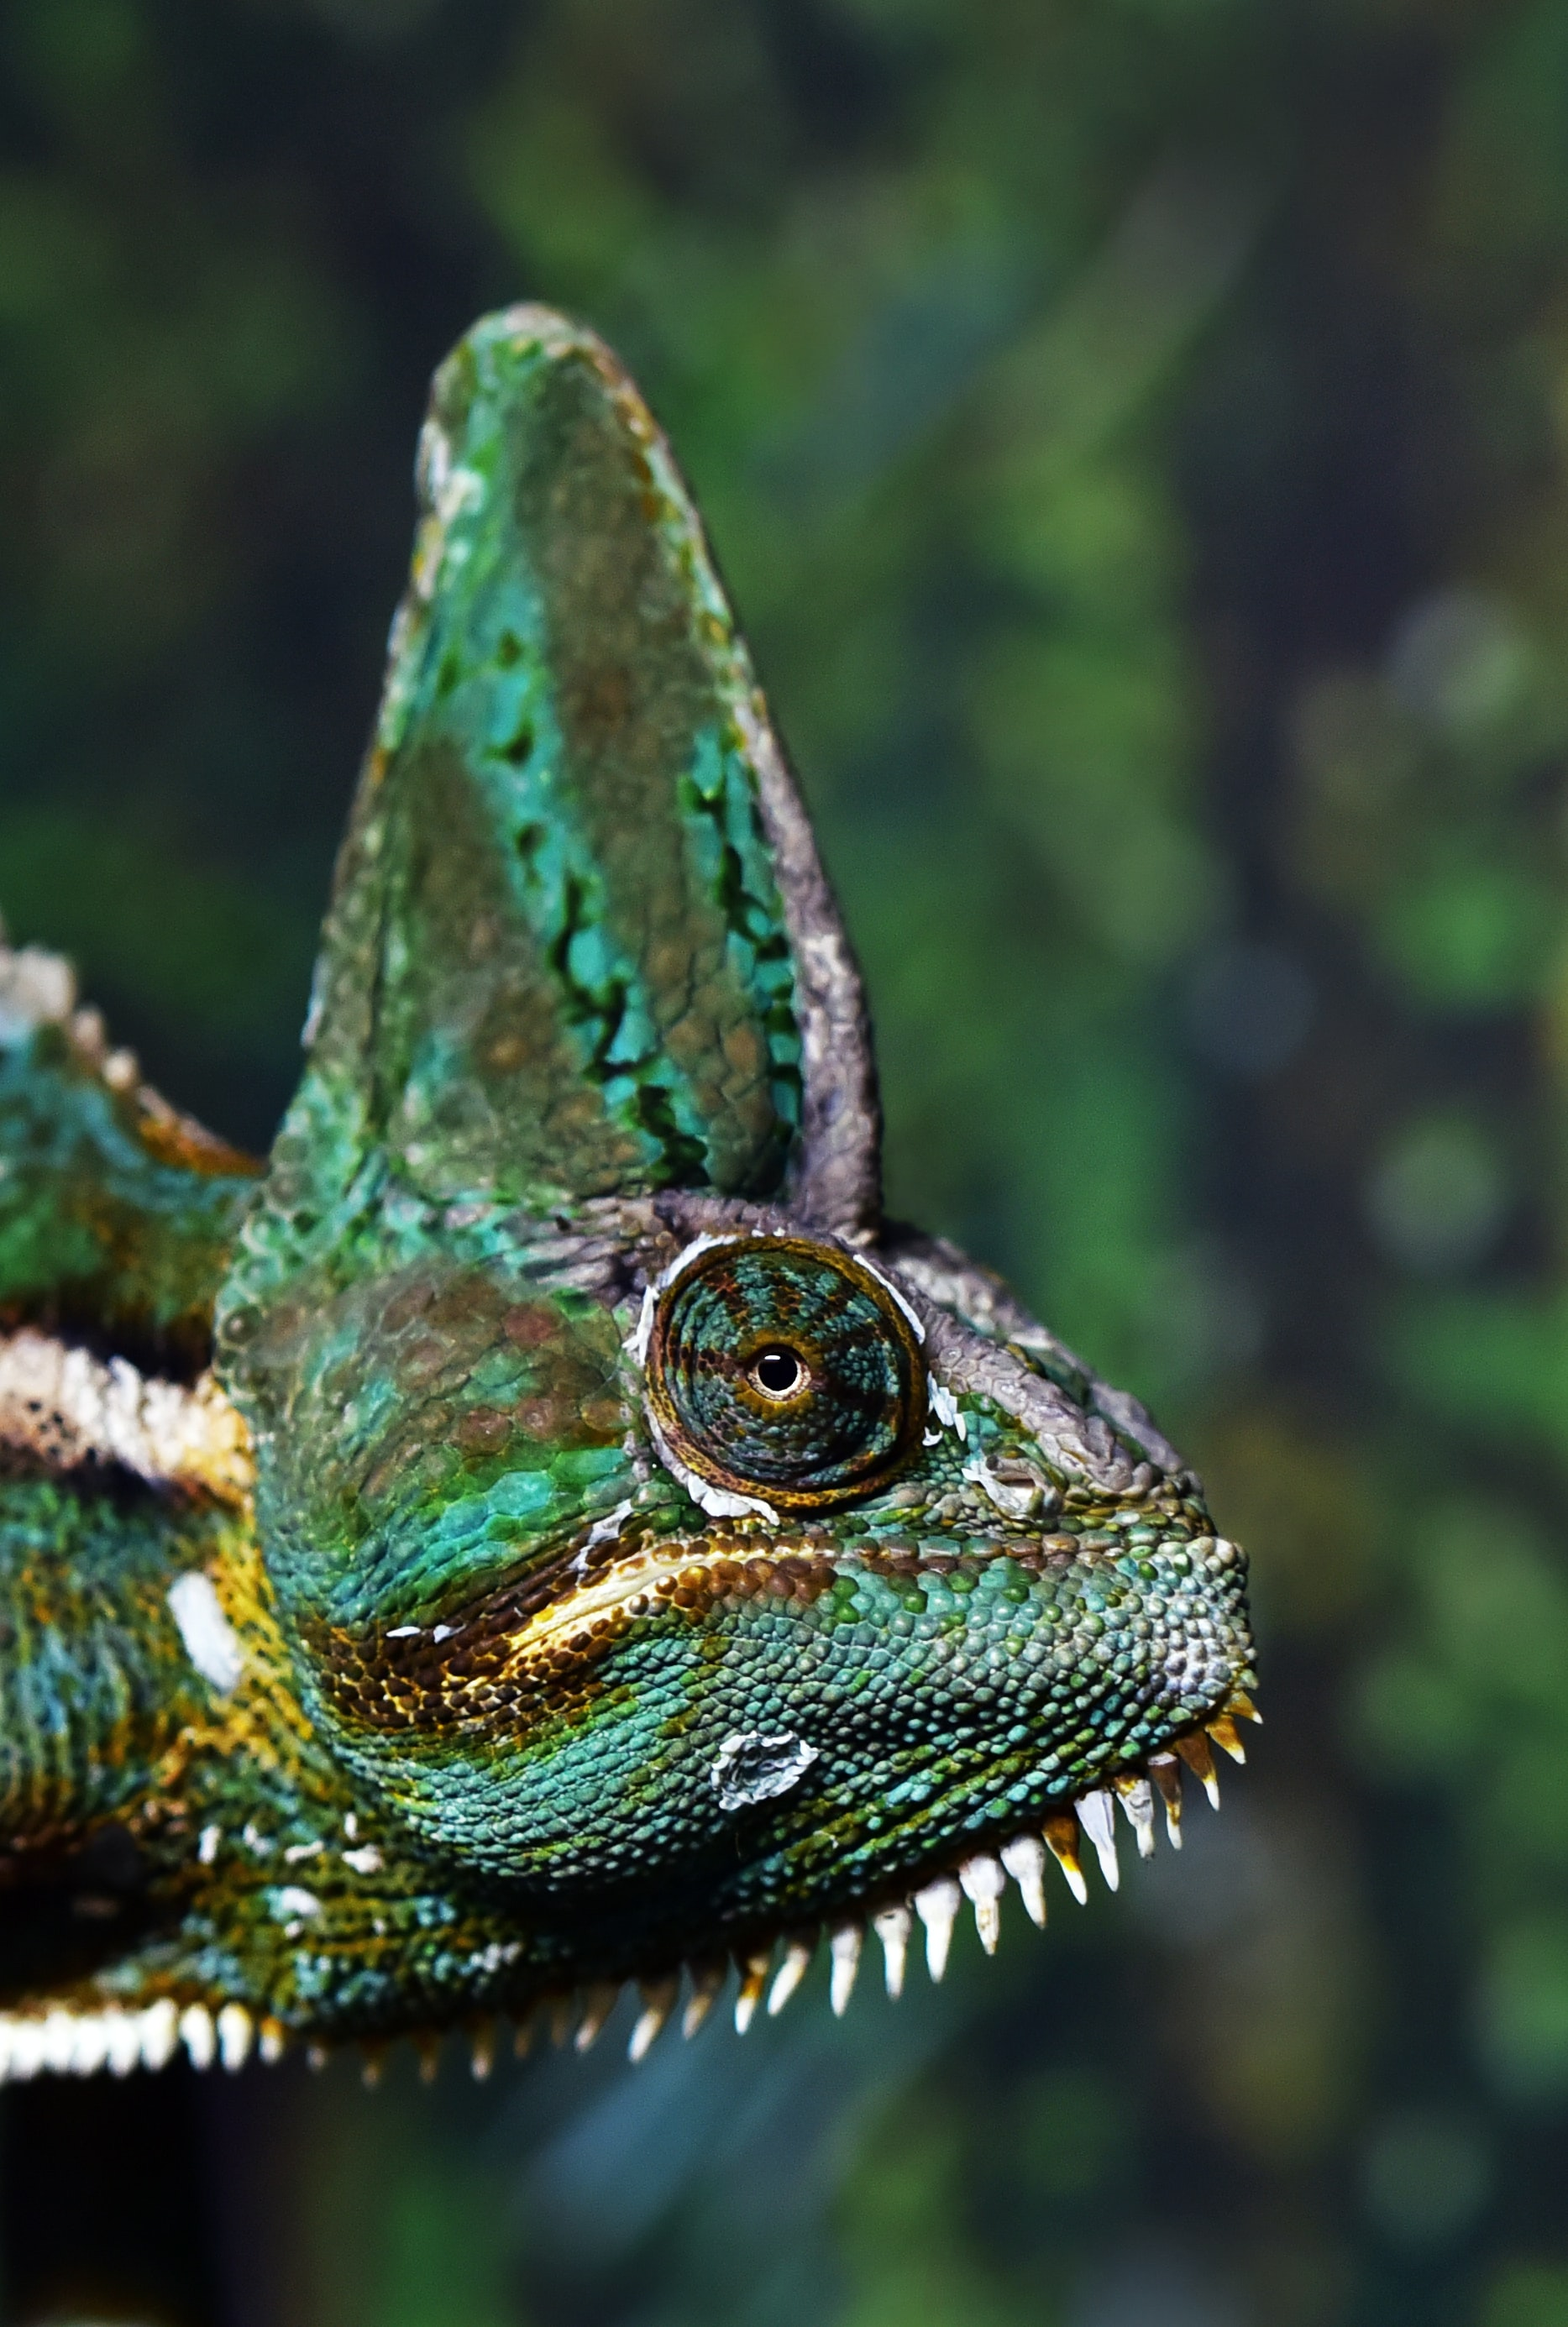 closeup photo of green and white chameleon